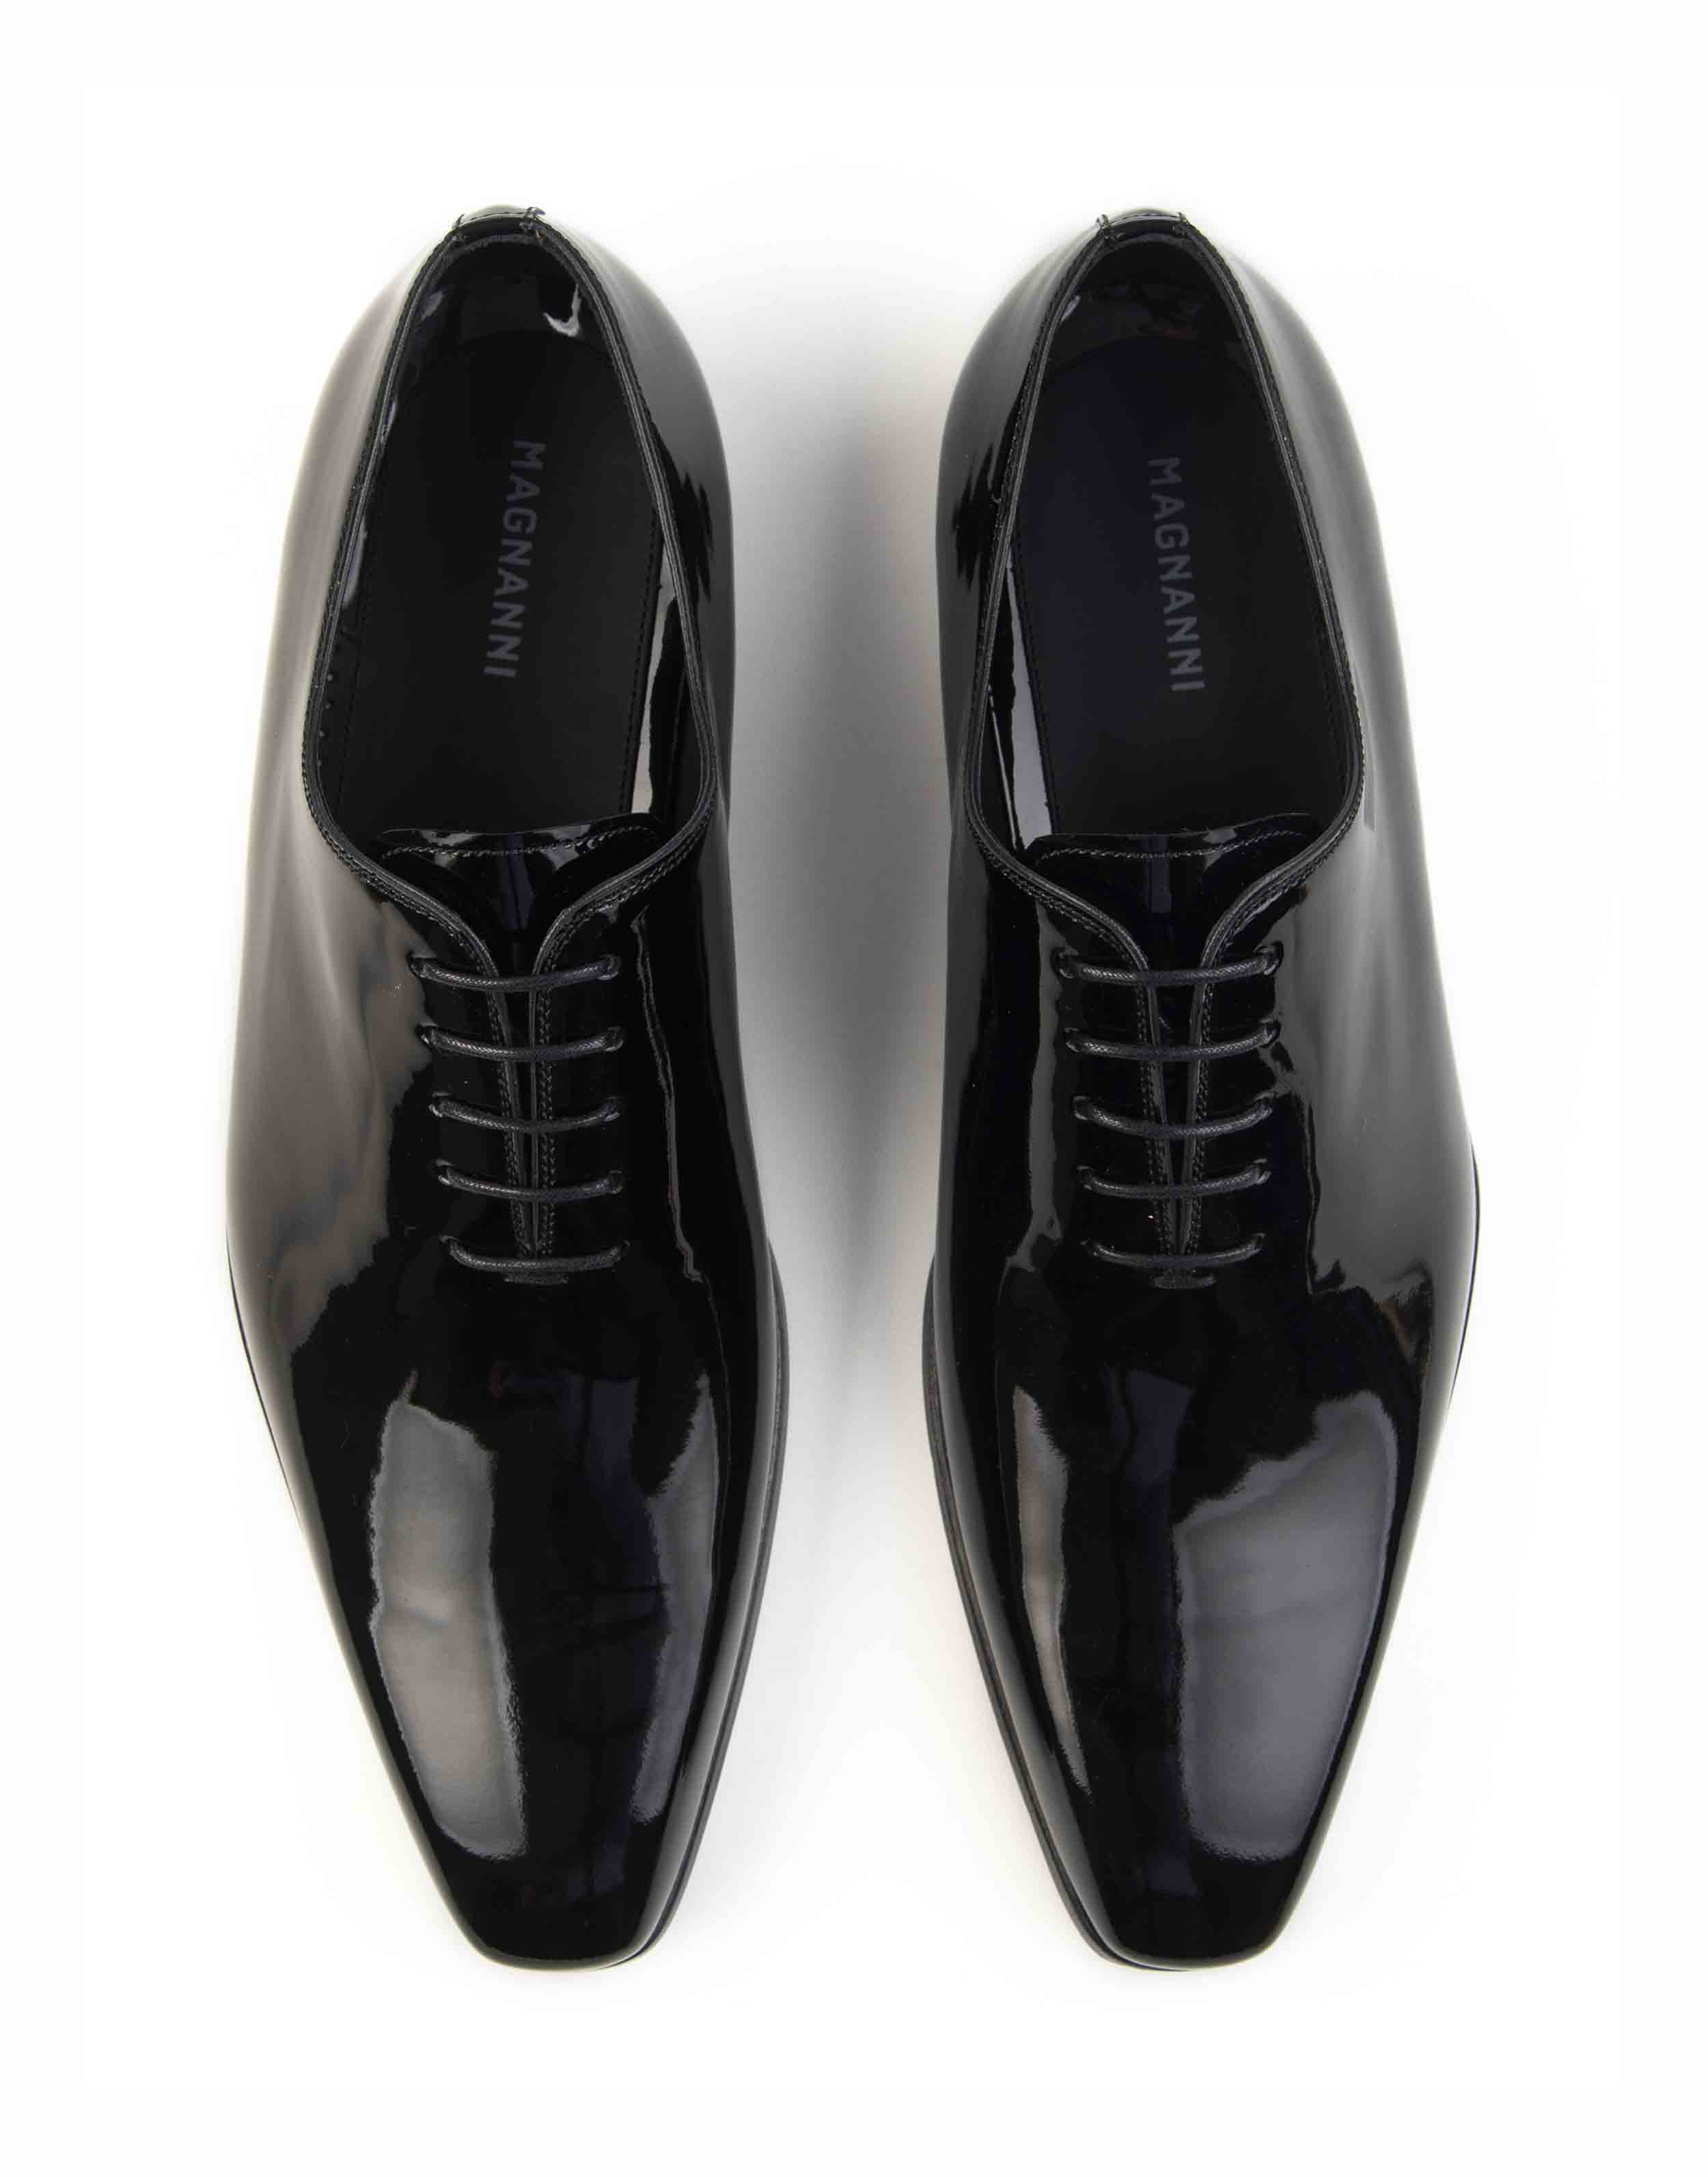 PATENT LEATHER OXFORD SHOE4